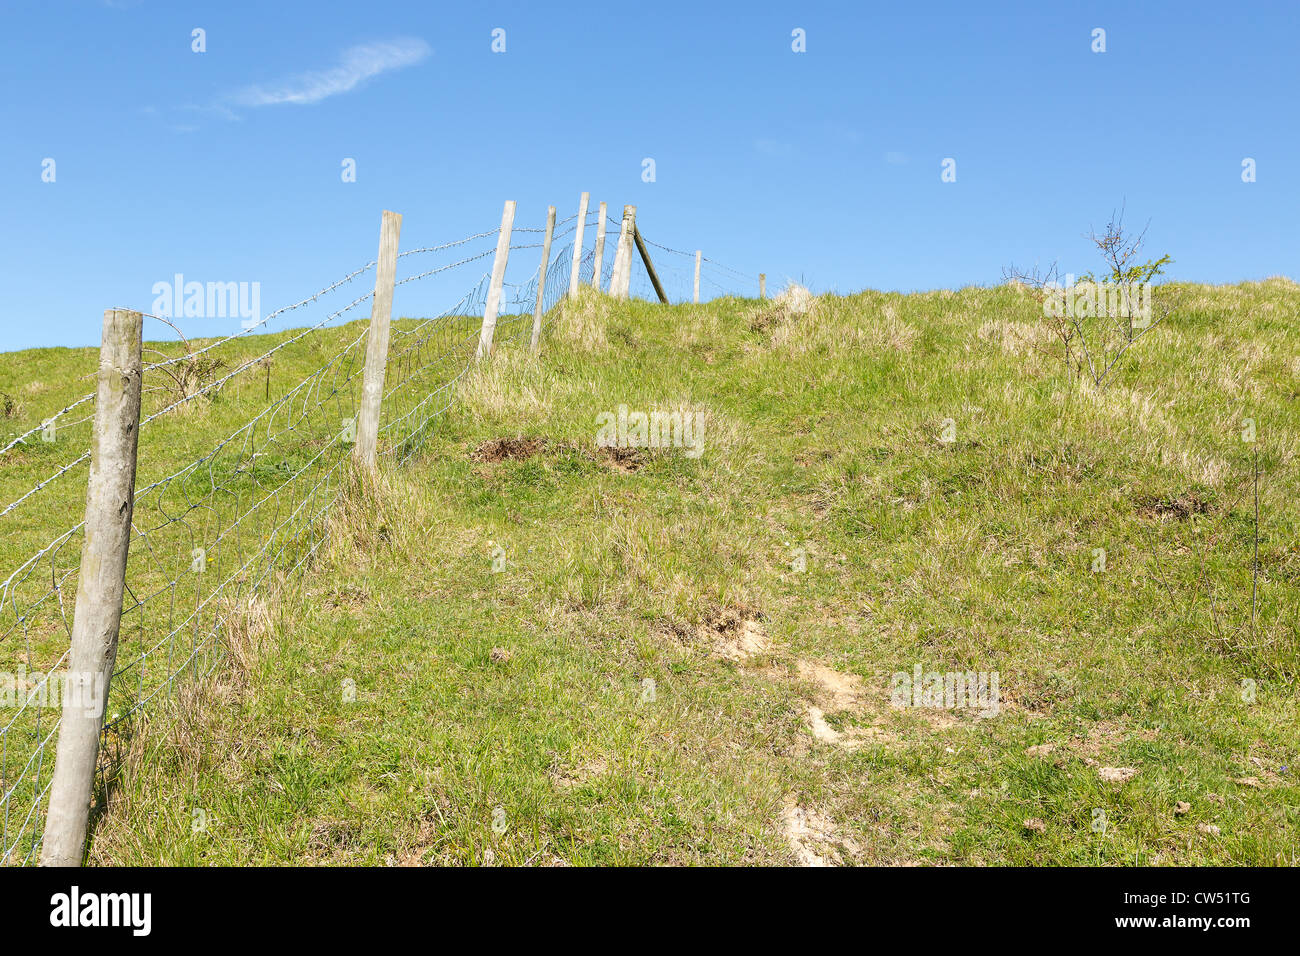 Sheep grazing field with a fence topped with barbed wire - blue sky with copy space - Stock Image